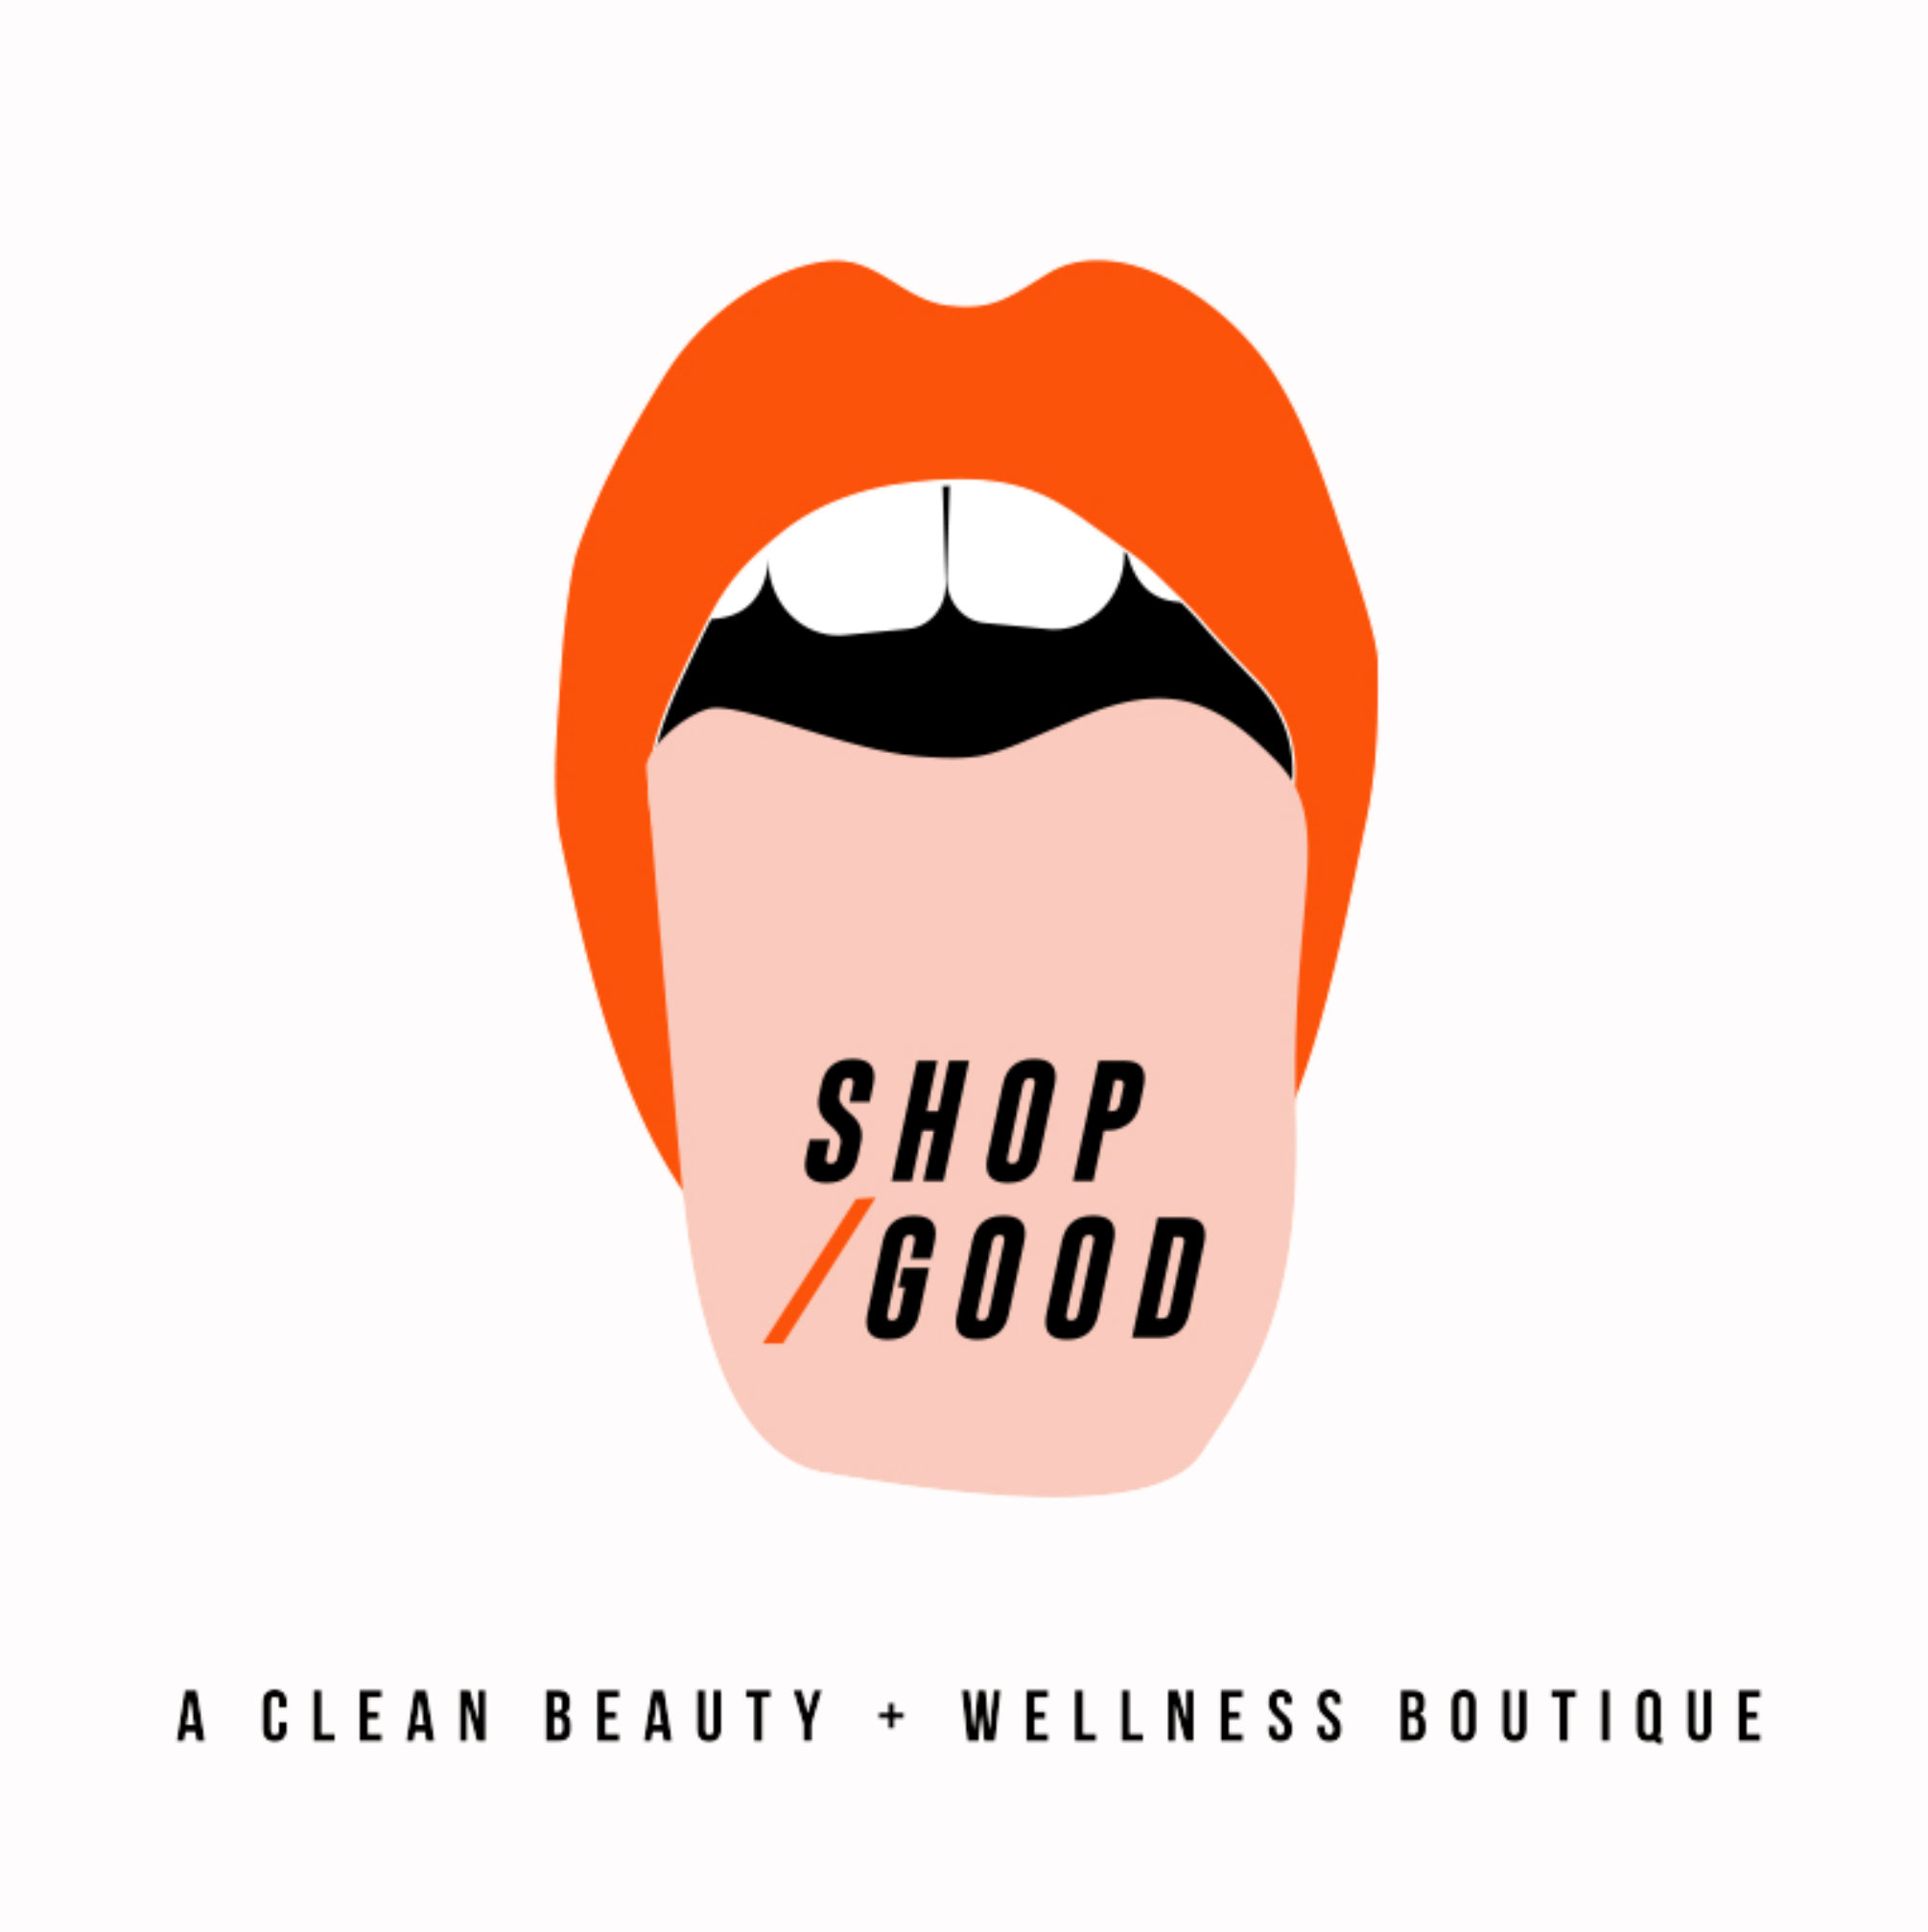 SHOP/GOOD - Good Life Co. launched the very first clean beauty + wellness shop in San Diego, CA.Kelly Robyn Co. worked with Good Life Co. to completely revamp their branding and spice it up with some playful design graphics. Kelly also designed the shops window display, curated the shops lounge area, wall decals, and fun merchandise for the shop. Kelly is also the product photographer for the shops most popular items.